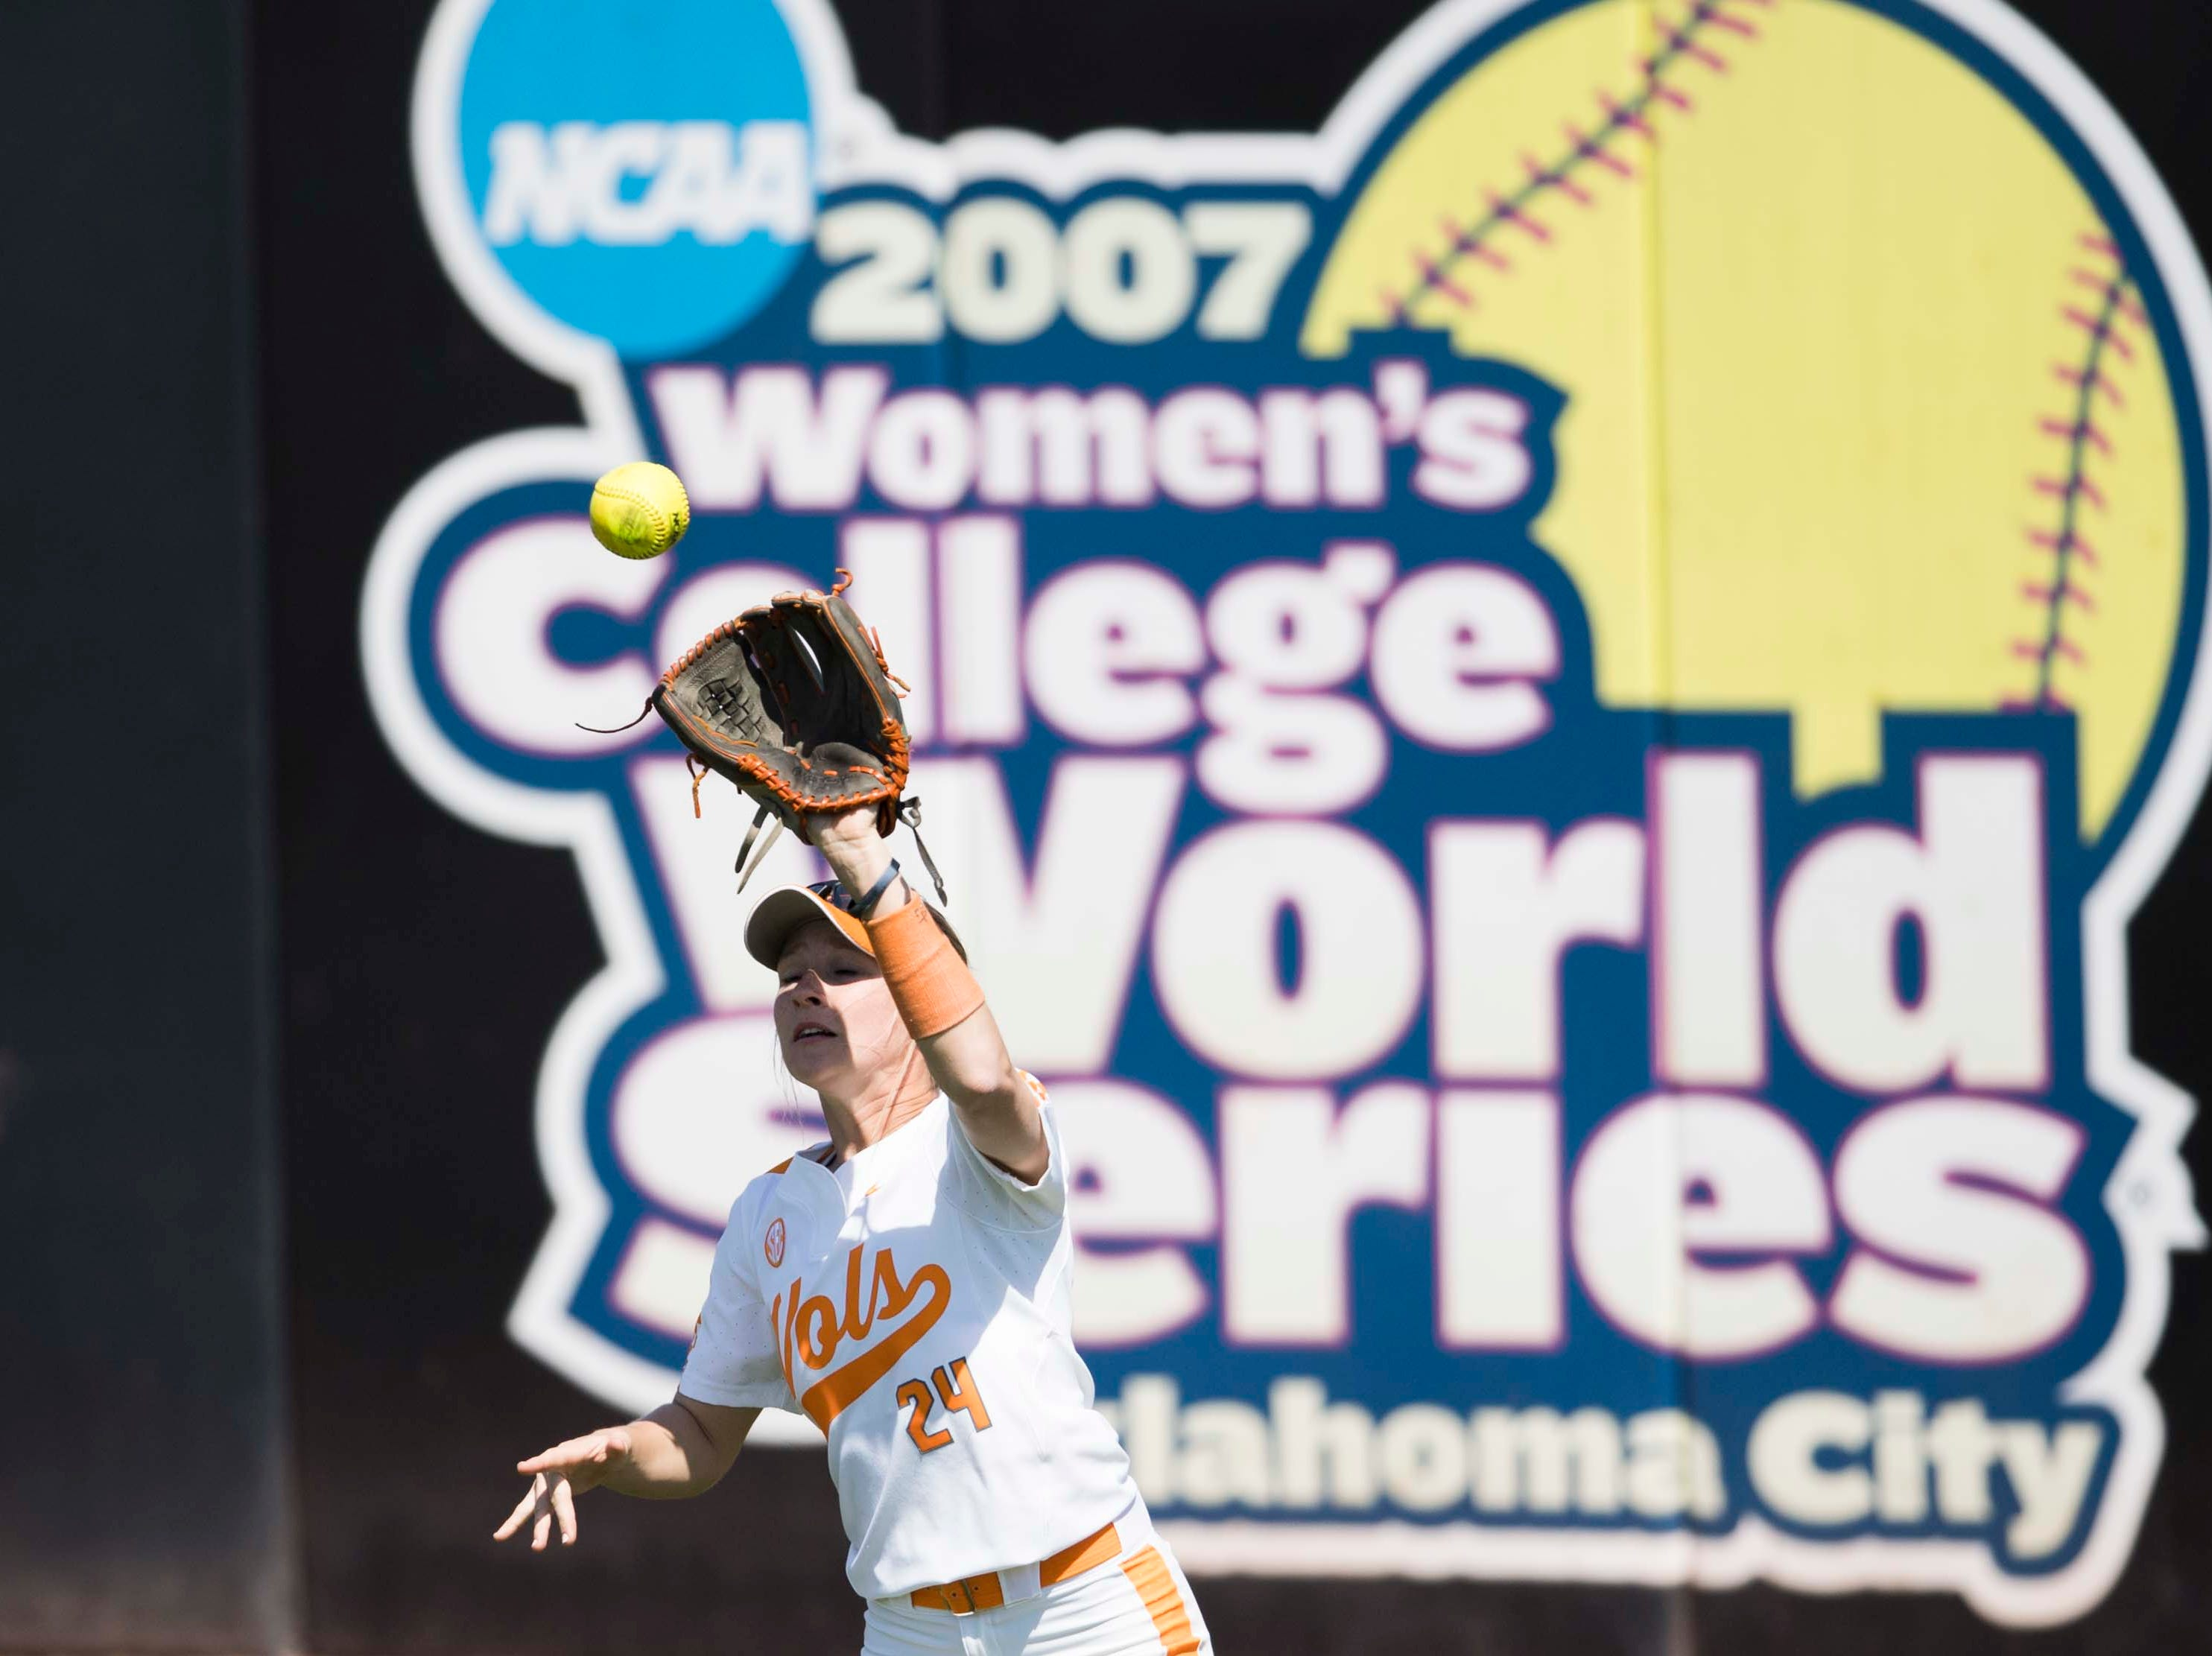 Tennessee outfielder Cailin Hannon (24) catches a fly ball during a Lady Vols softball game against Arkansas at Sherri Parker Lee stadium on University of Tennessee's campus in Knoxville Sunday, March 24, 2019. The Lady Vols defeated Arkansas.